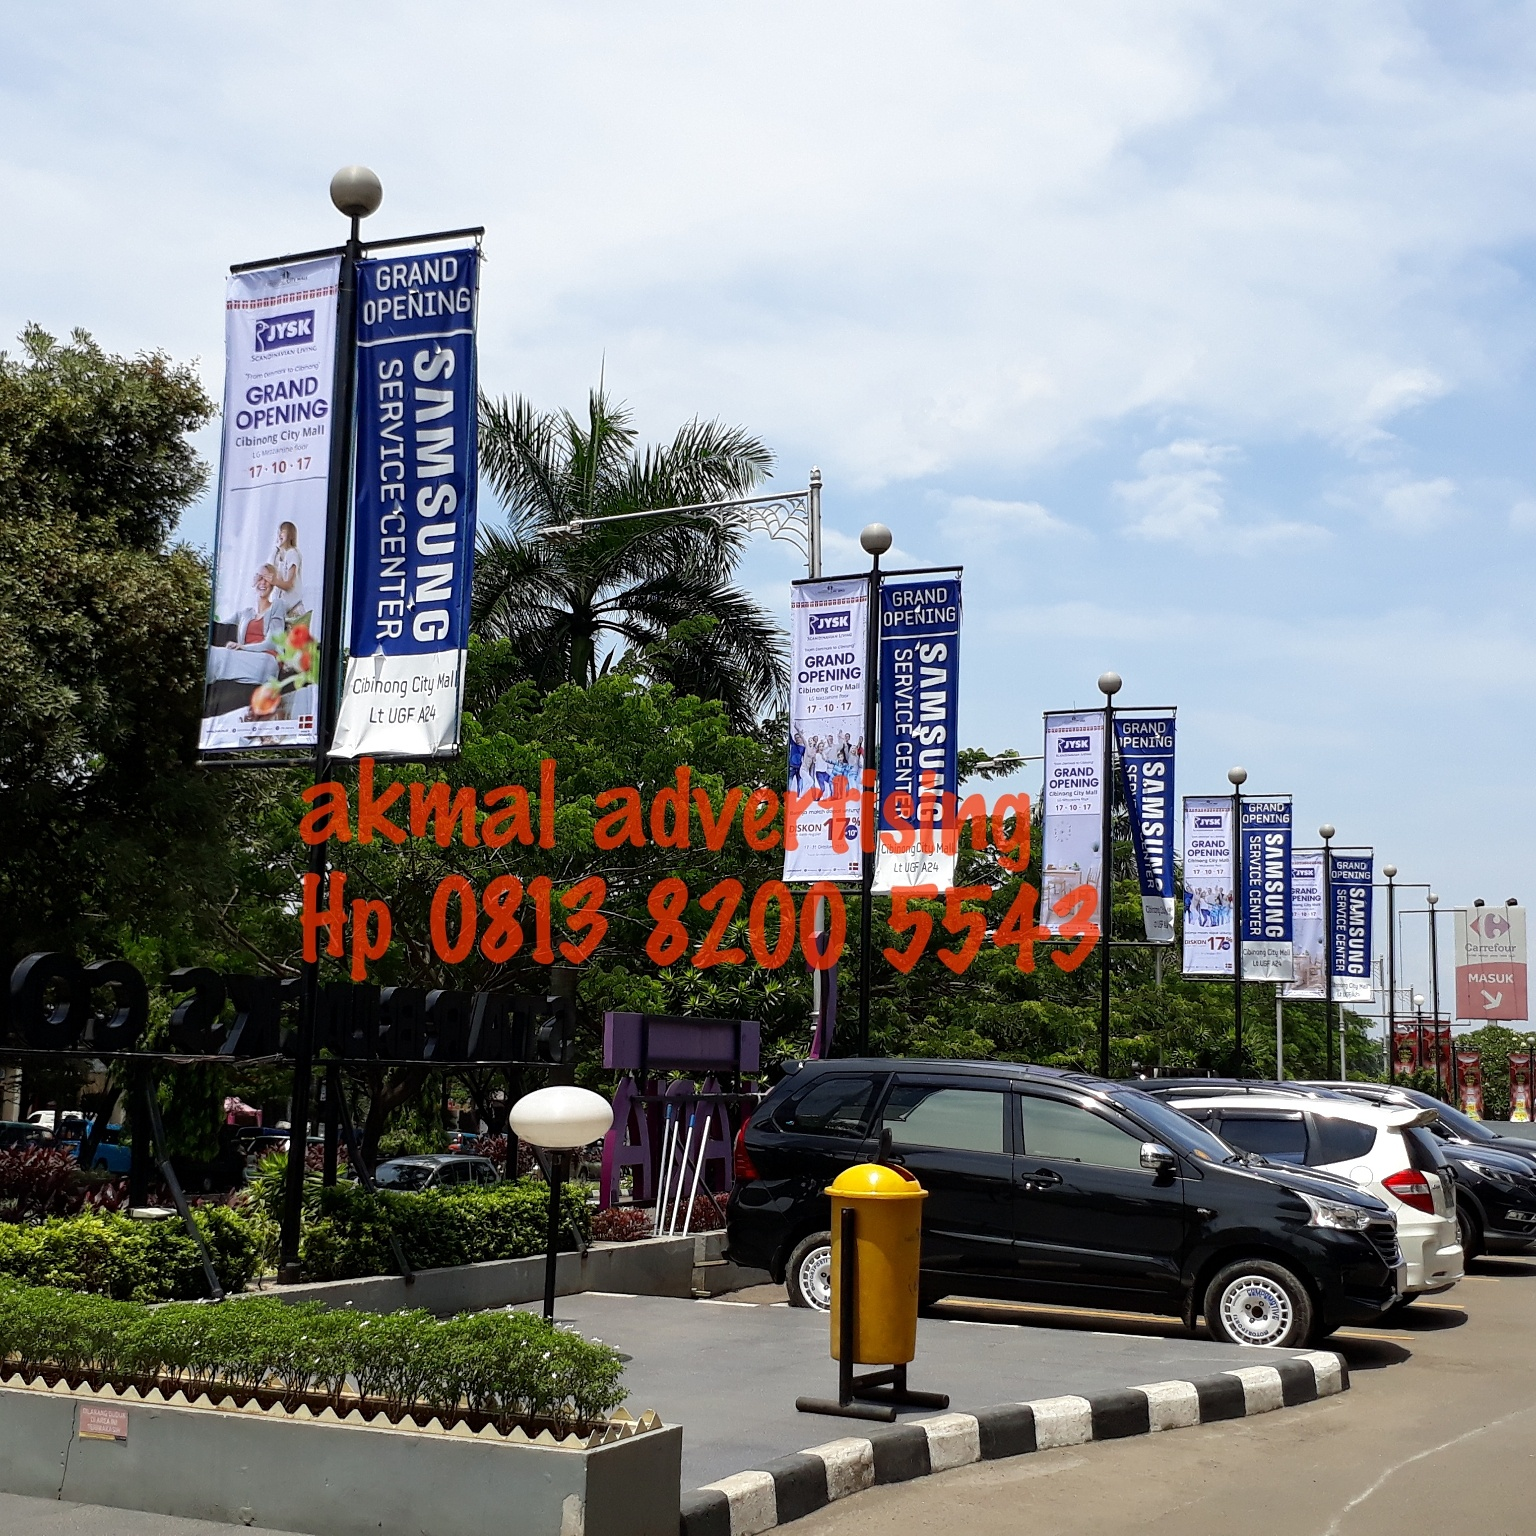 T-BANNER AREA PARKIR MALL